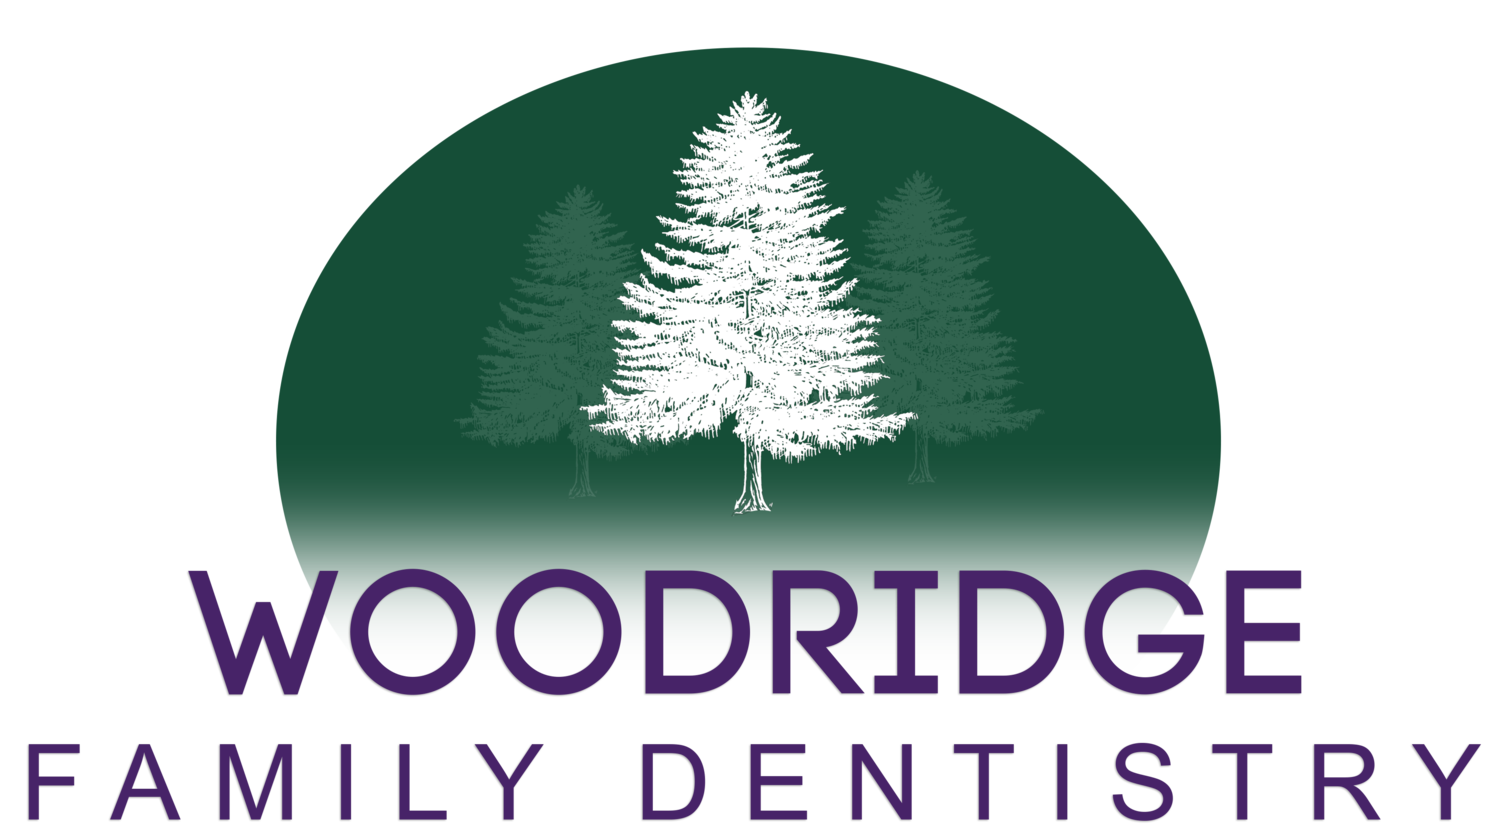 Woodridge Family Dentistry